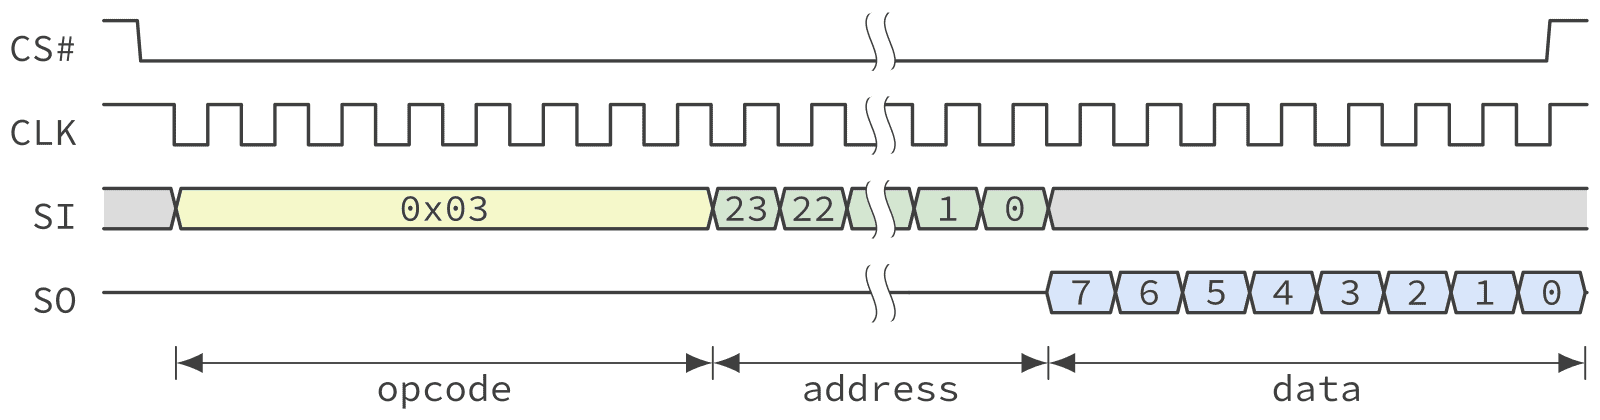 Timing diagram of a QSPI NOR Flash read operation in standard SPI mode suing the SPI bus mode 1,1.